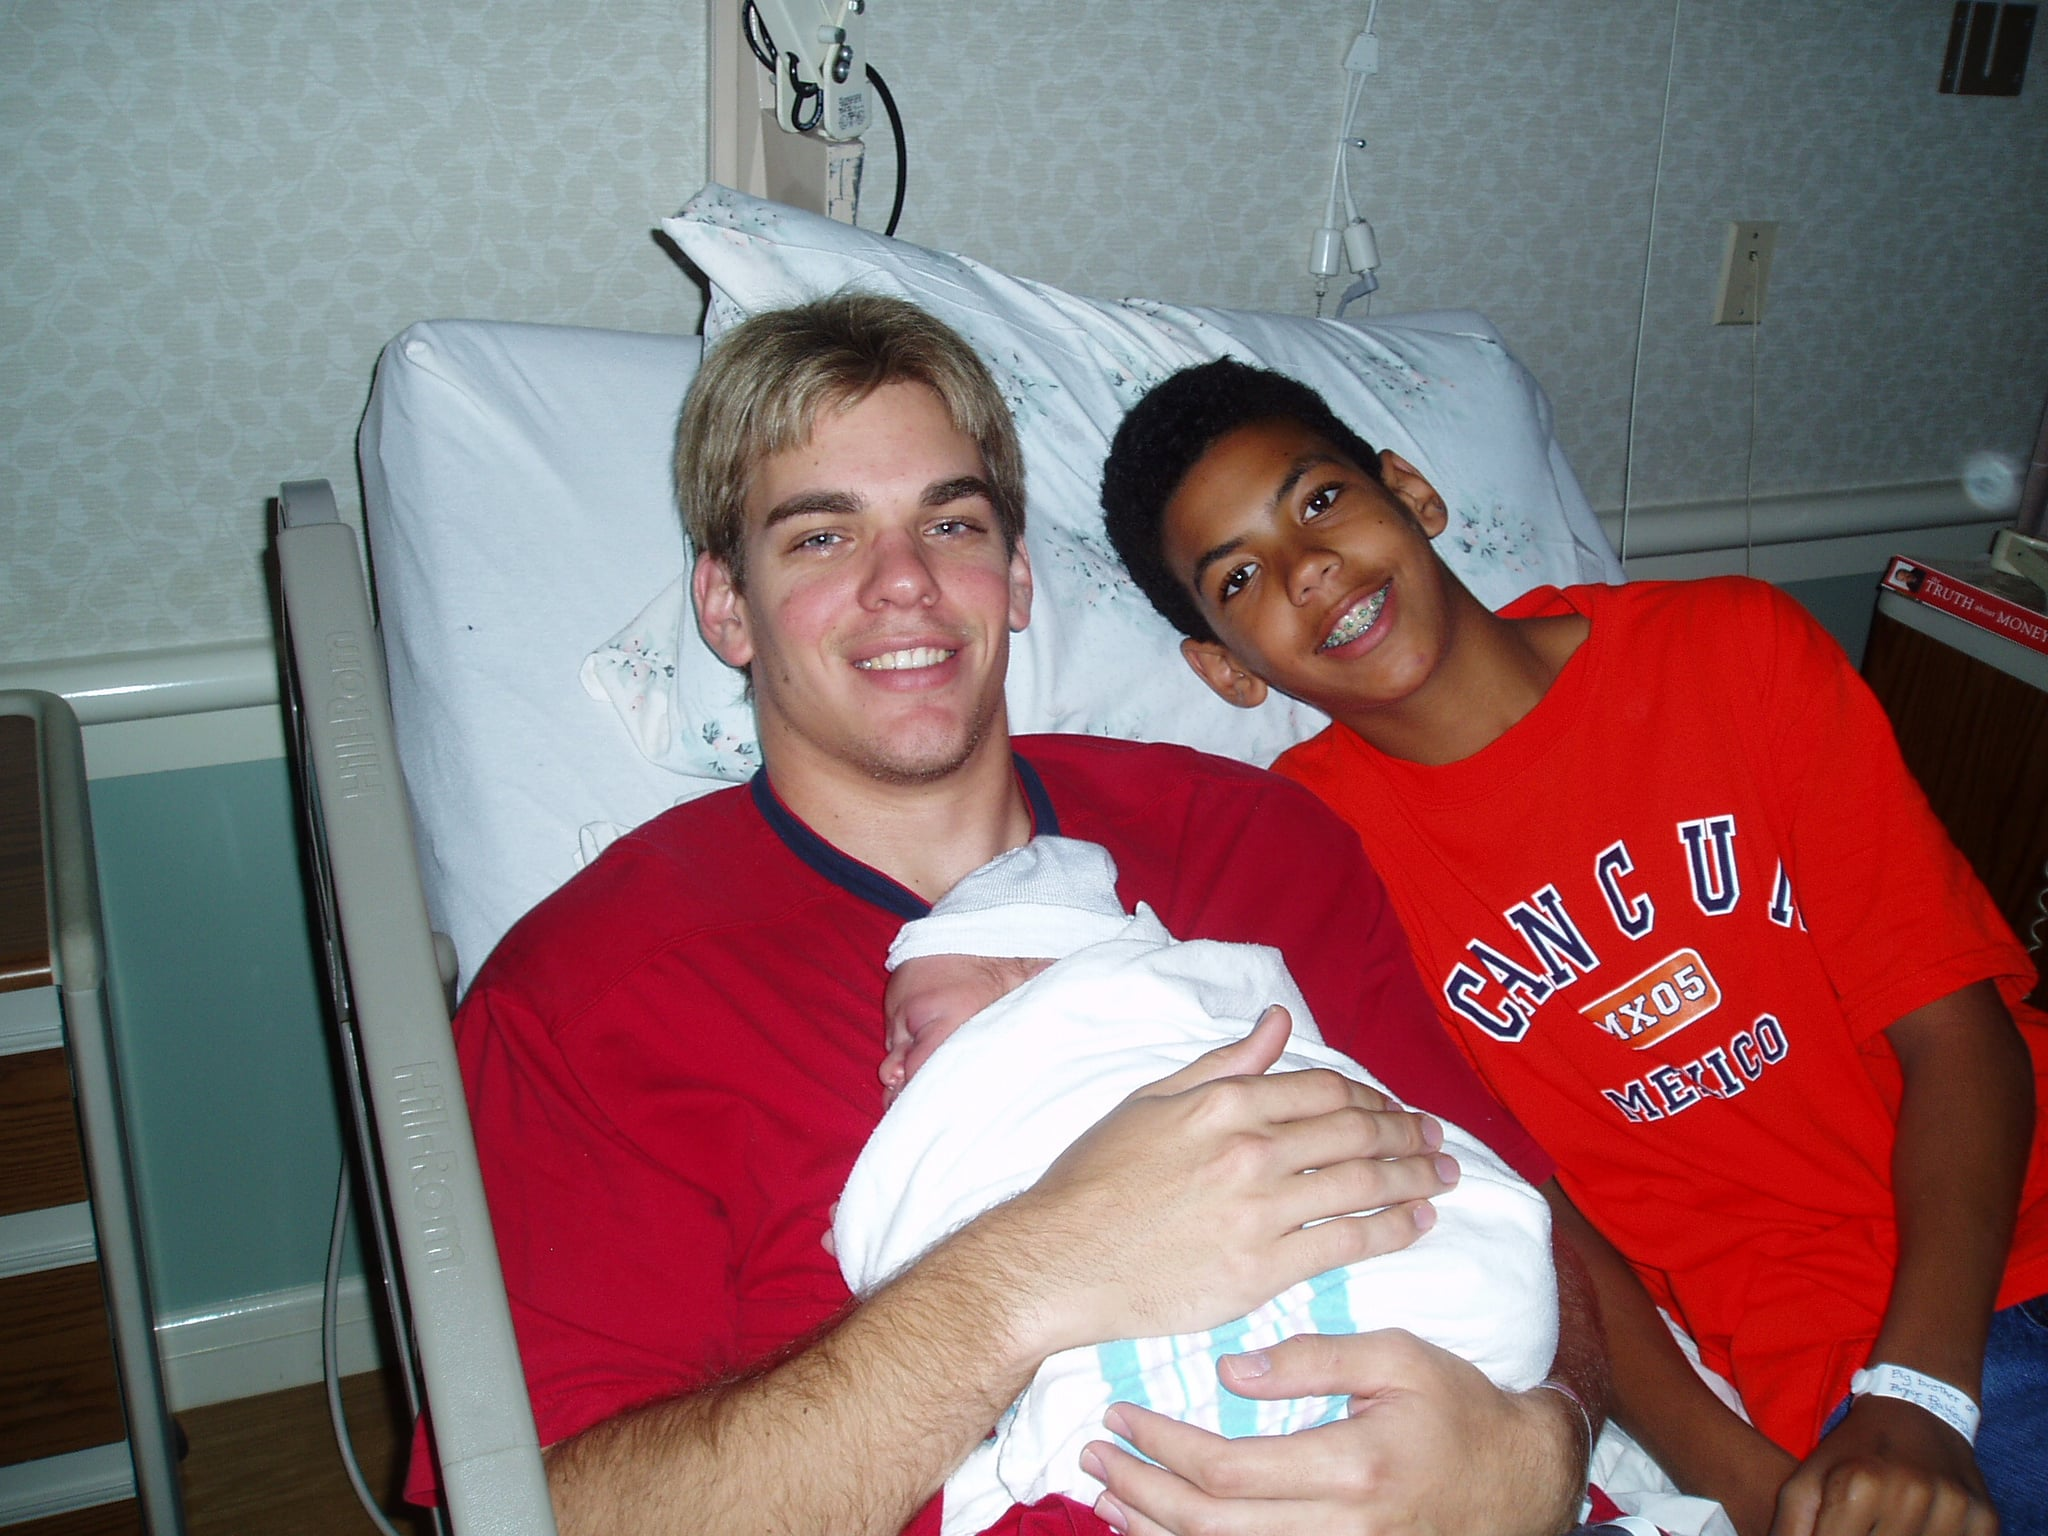 Jarrett (left) and Braiden (right) spent time with Bryce in the hospital just after his birth in June of 2006.